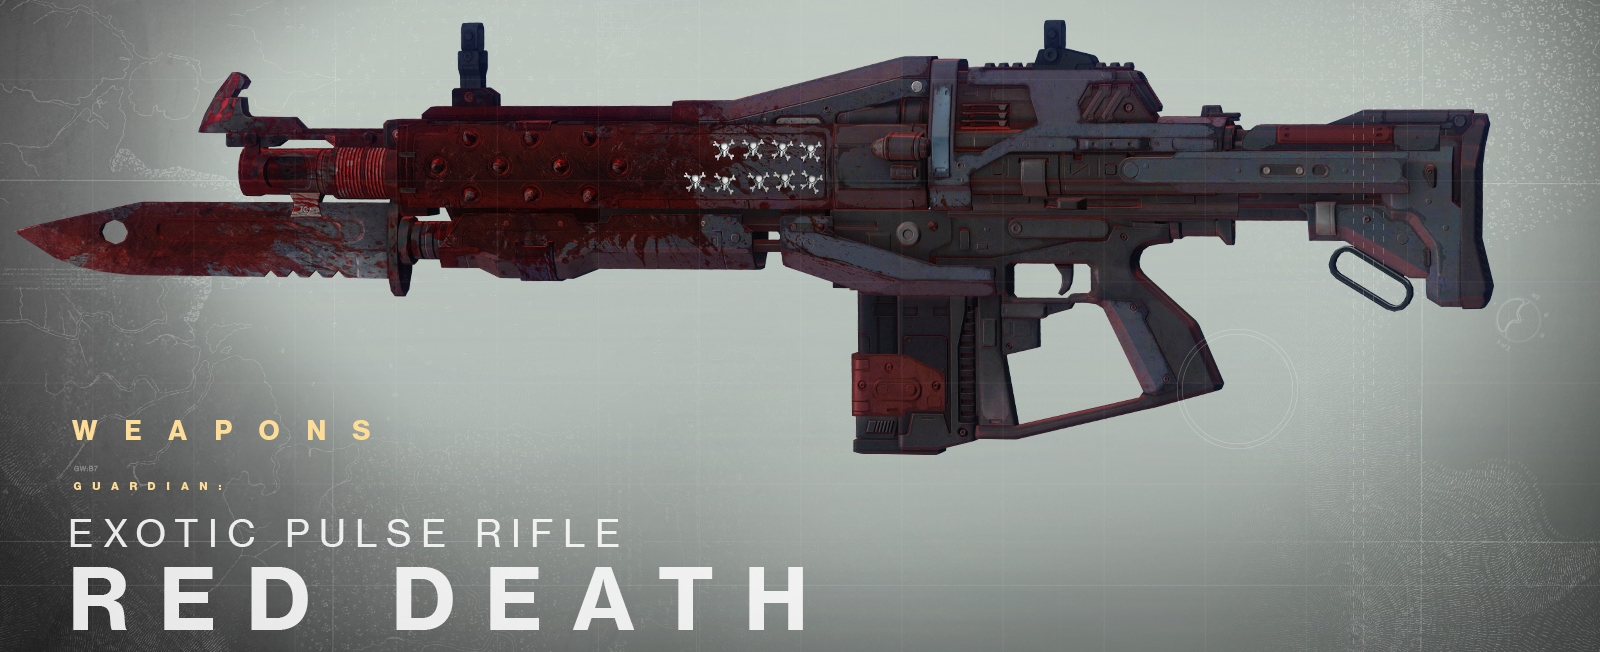 The red death perk is what really makes this weapon a threat after